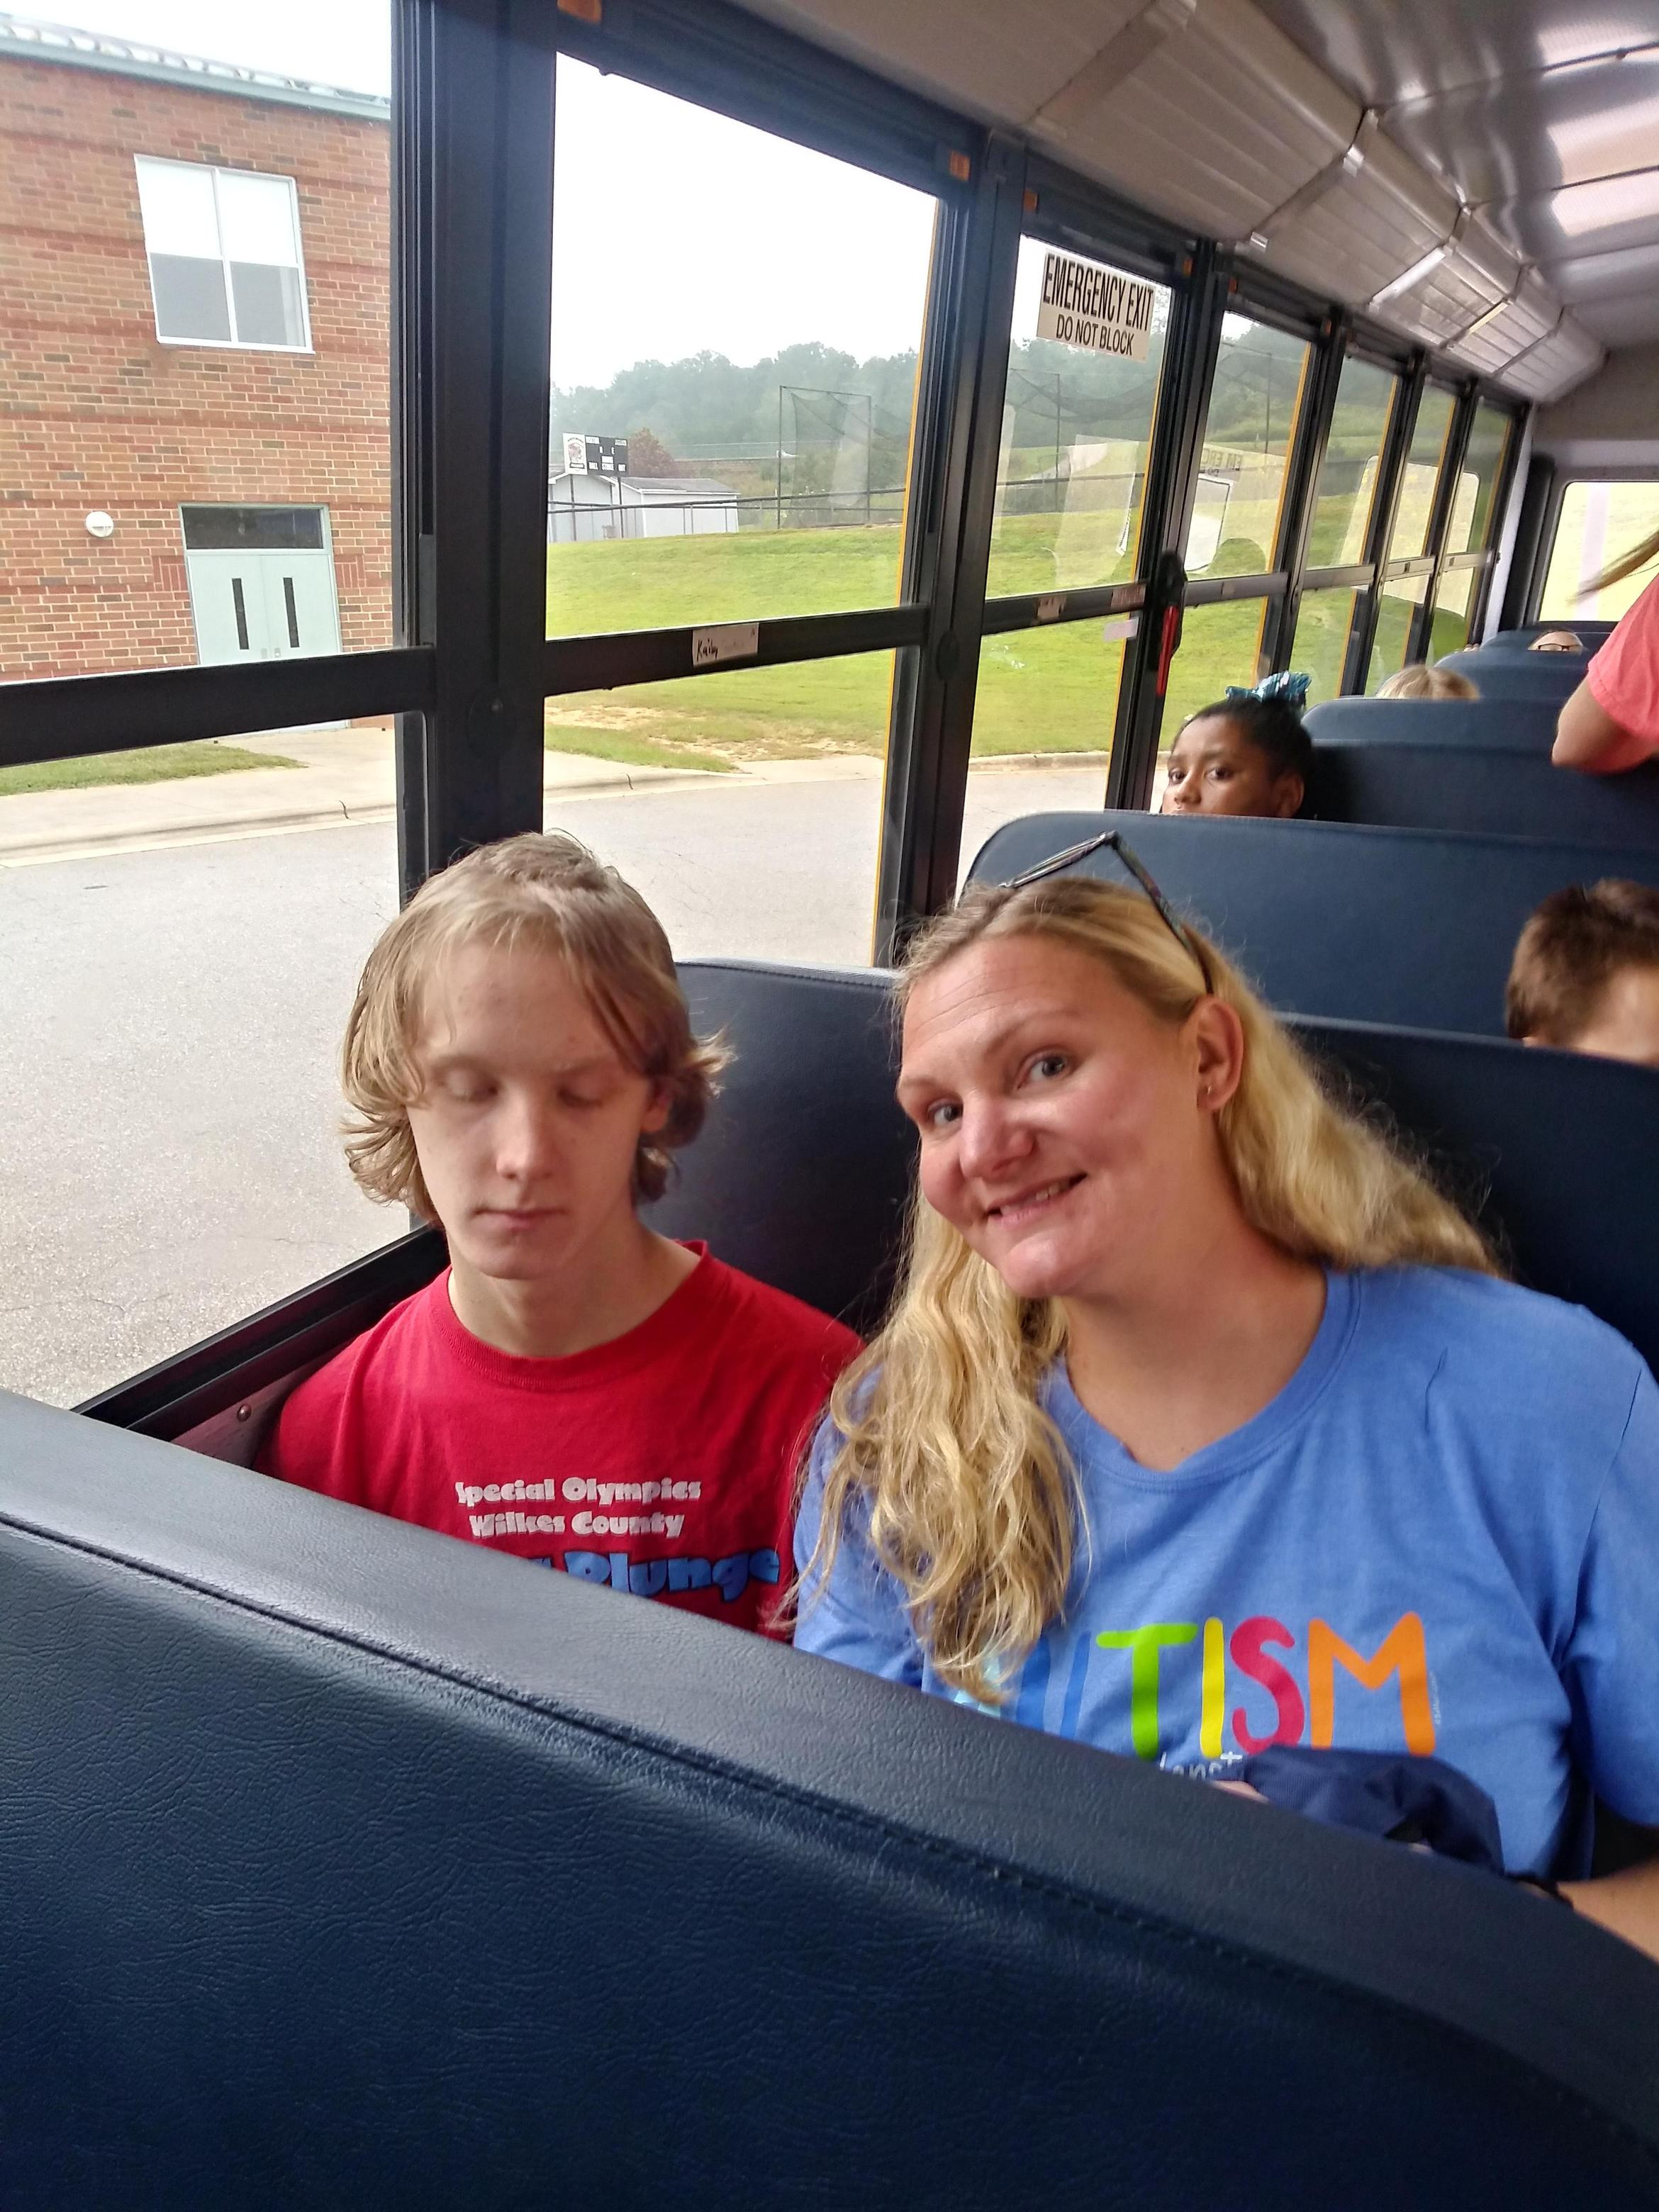 Mrs. G And student on the bus